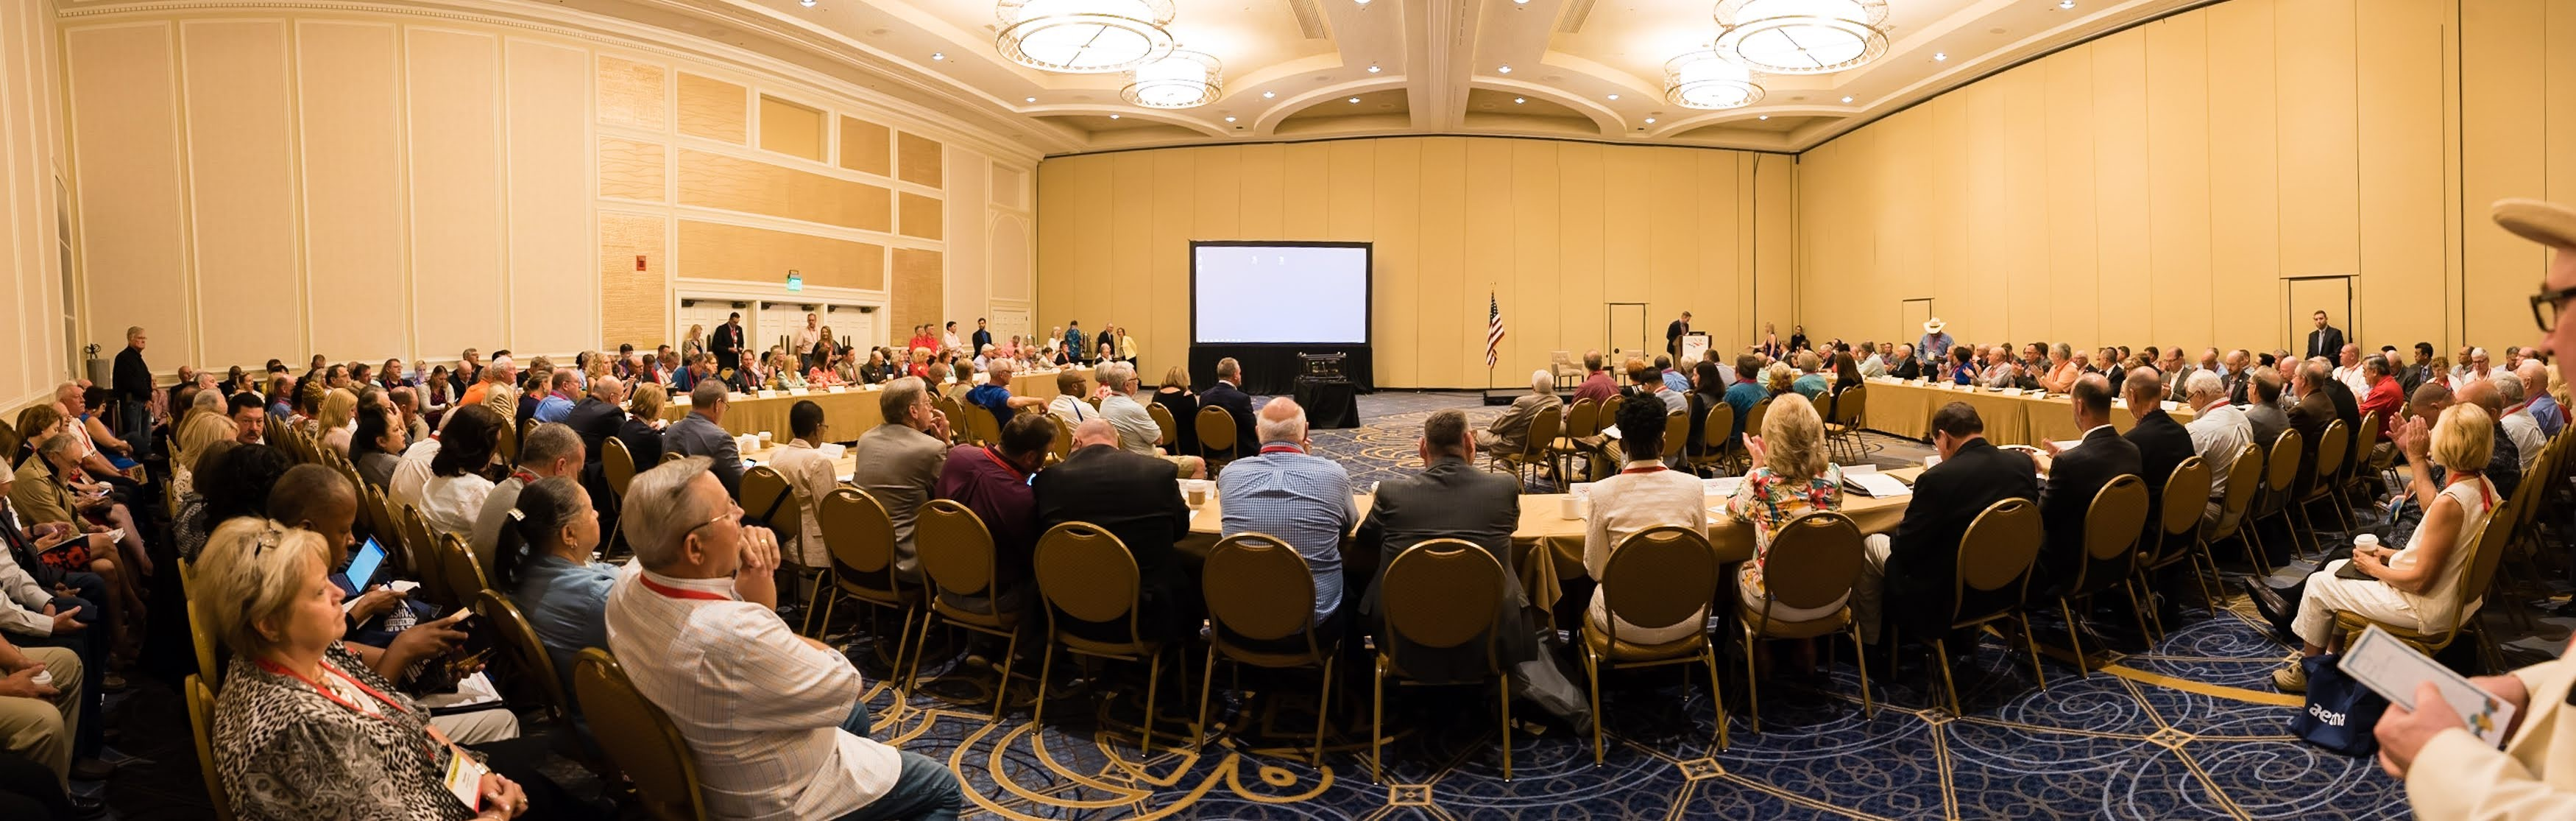 NACo's 84th Annual Conference & Exposition | NACo